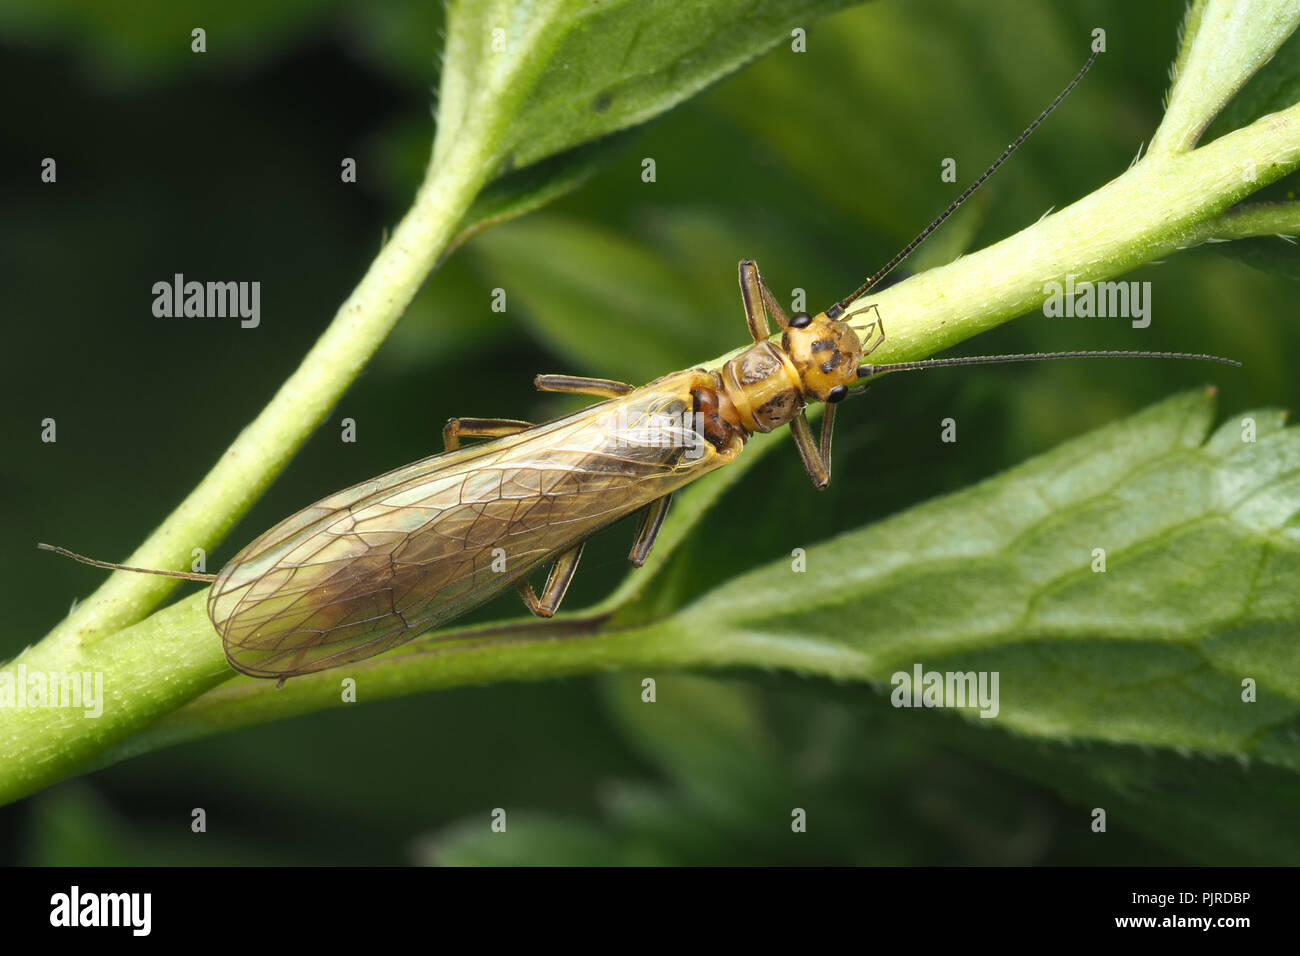 Stonefly (Isoperla grammatica) perched on stem of creeping buttercup. Tipperary, Ireland - Stock Image